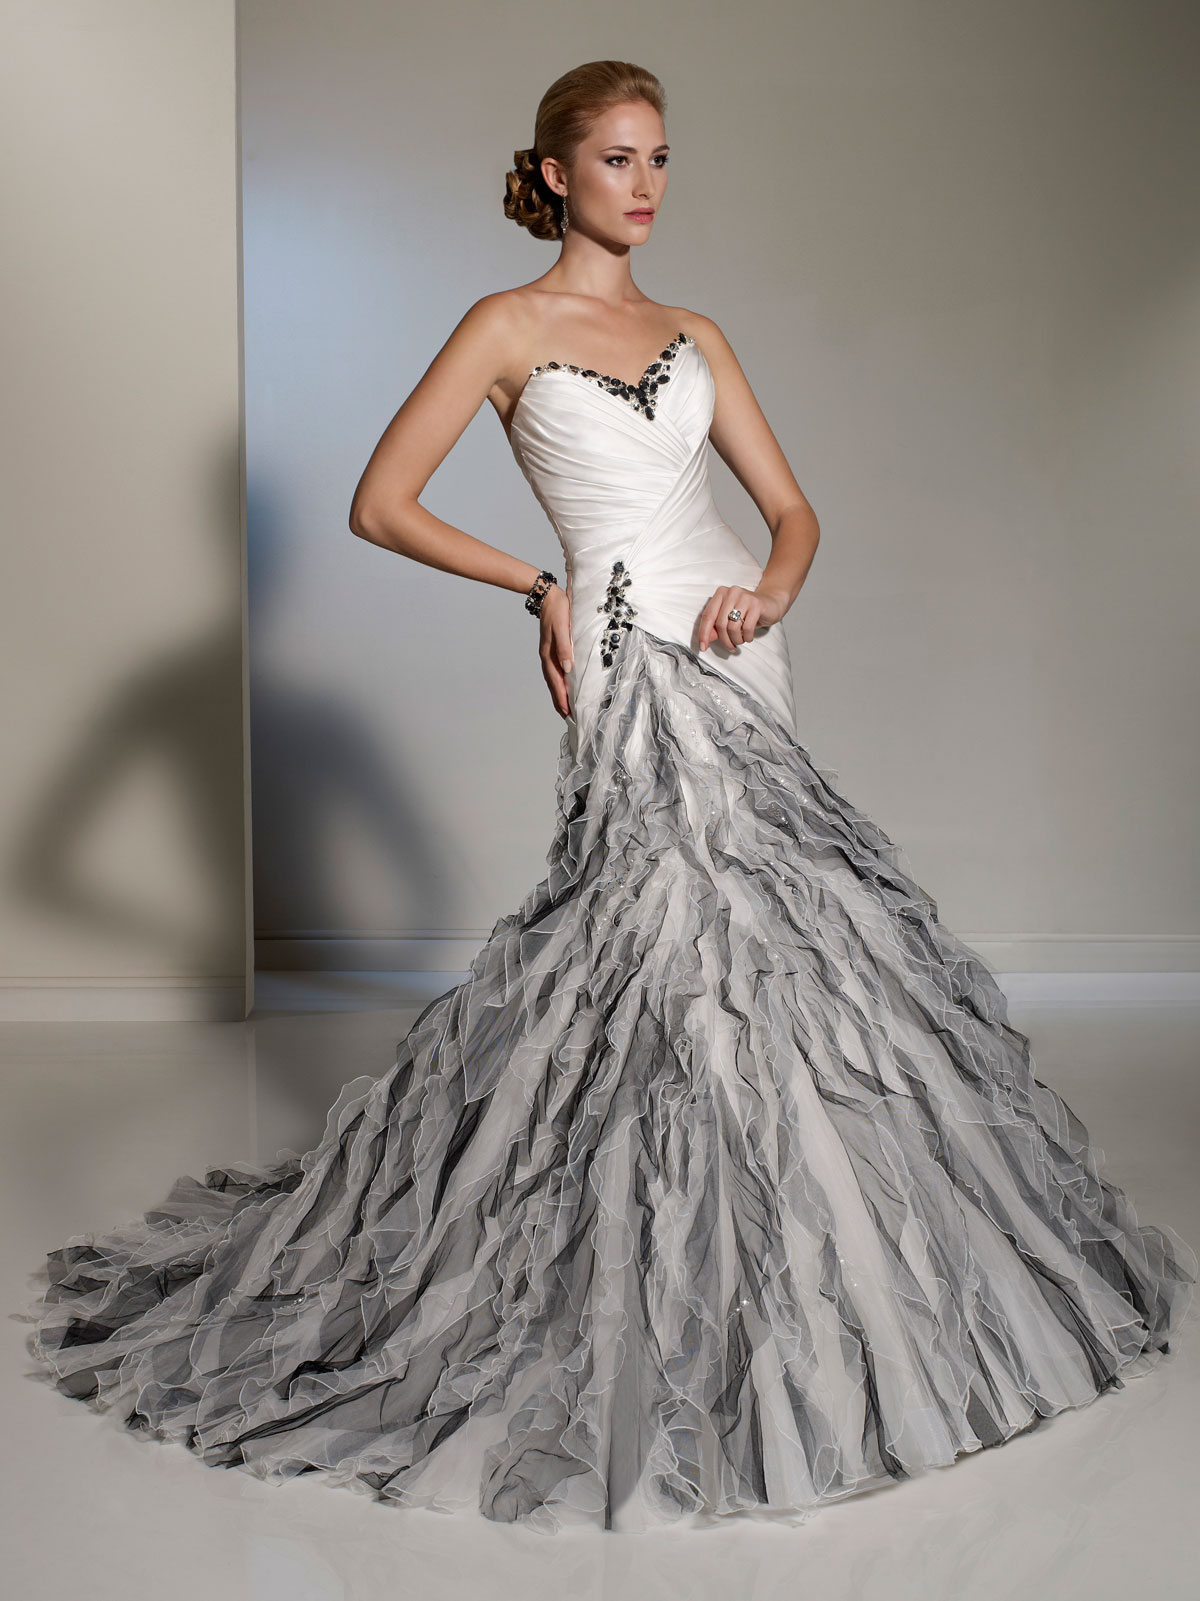 Grey and white wedding dresses